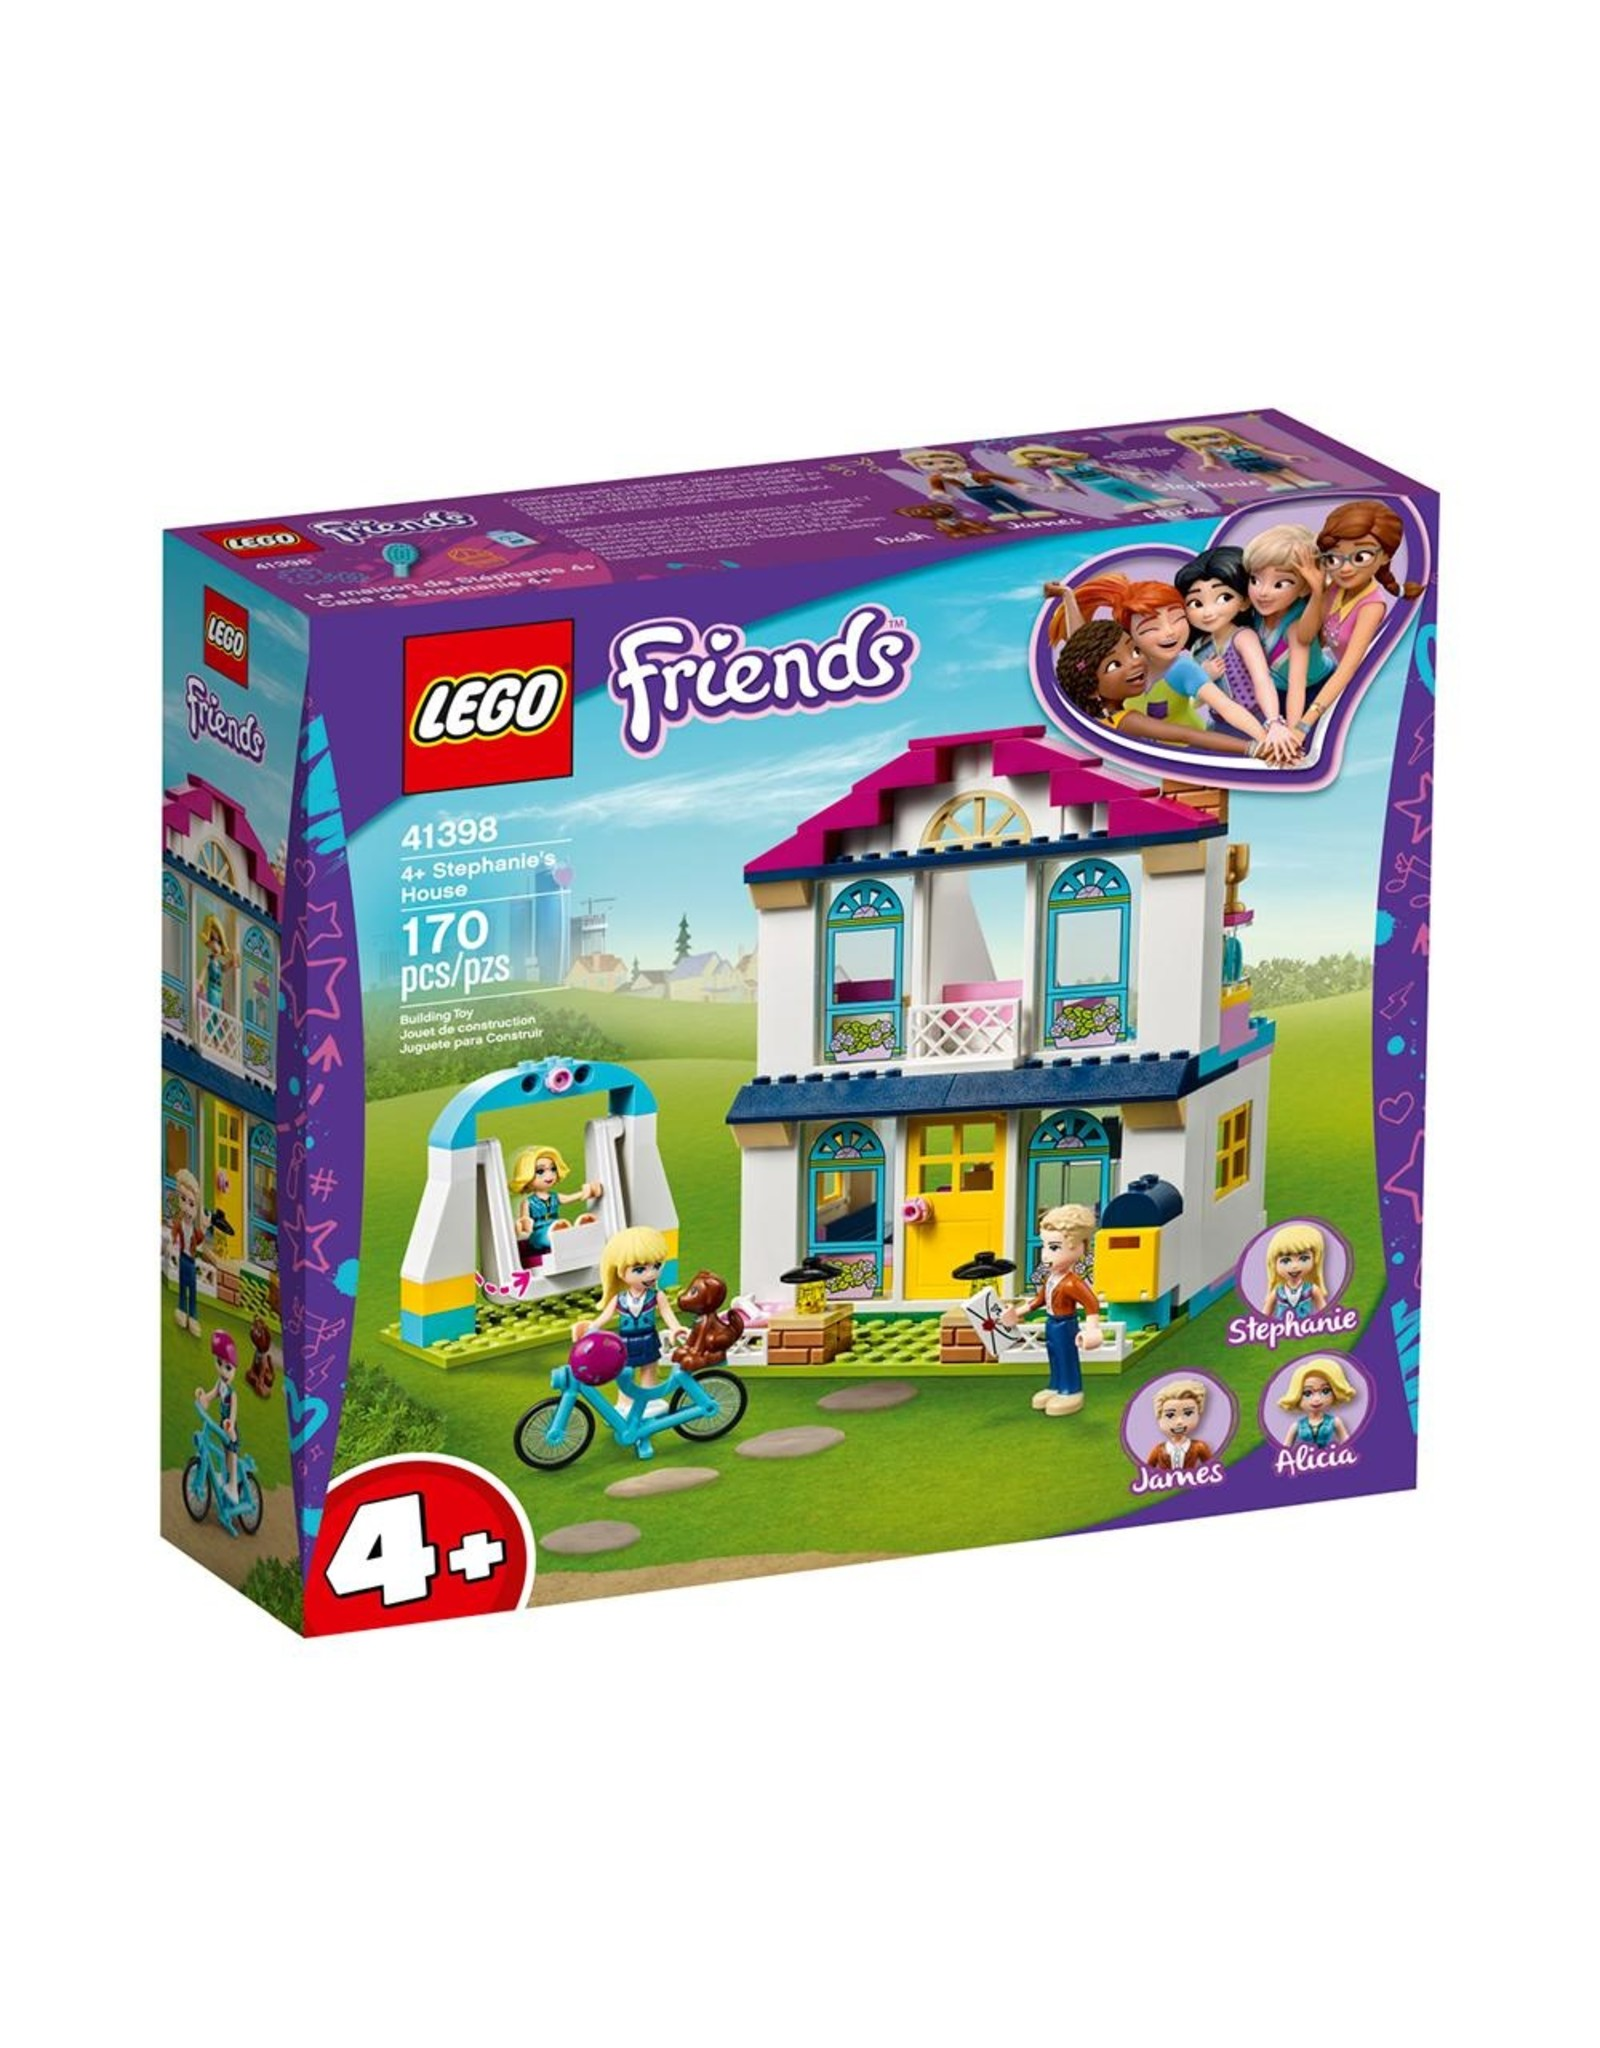 LEGO Friends - 41398 - Stephanie's House